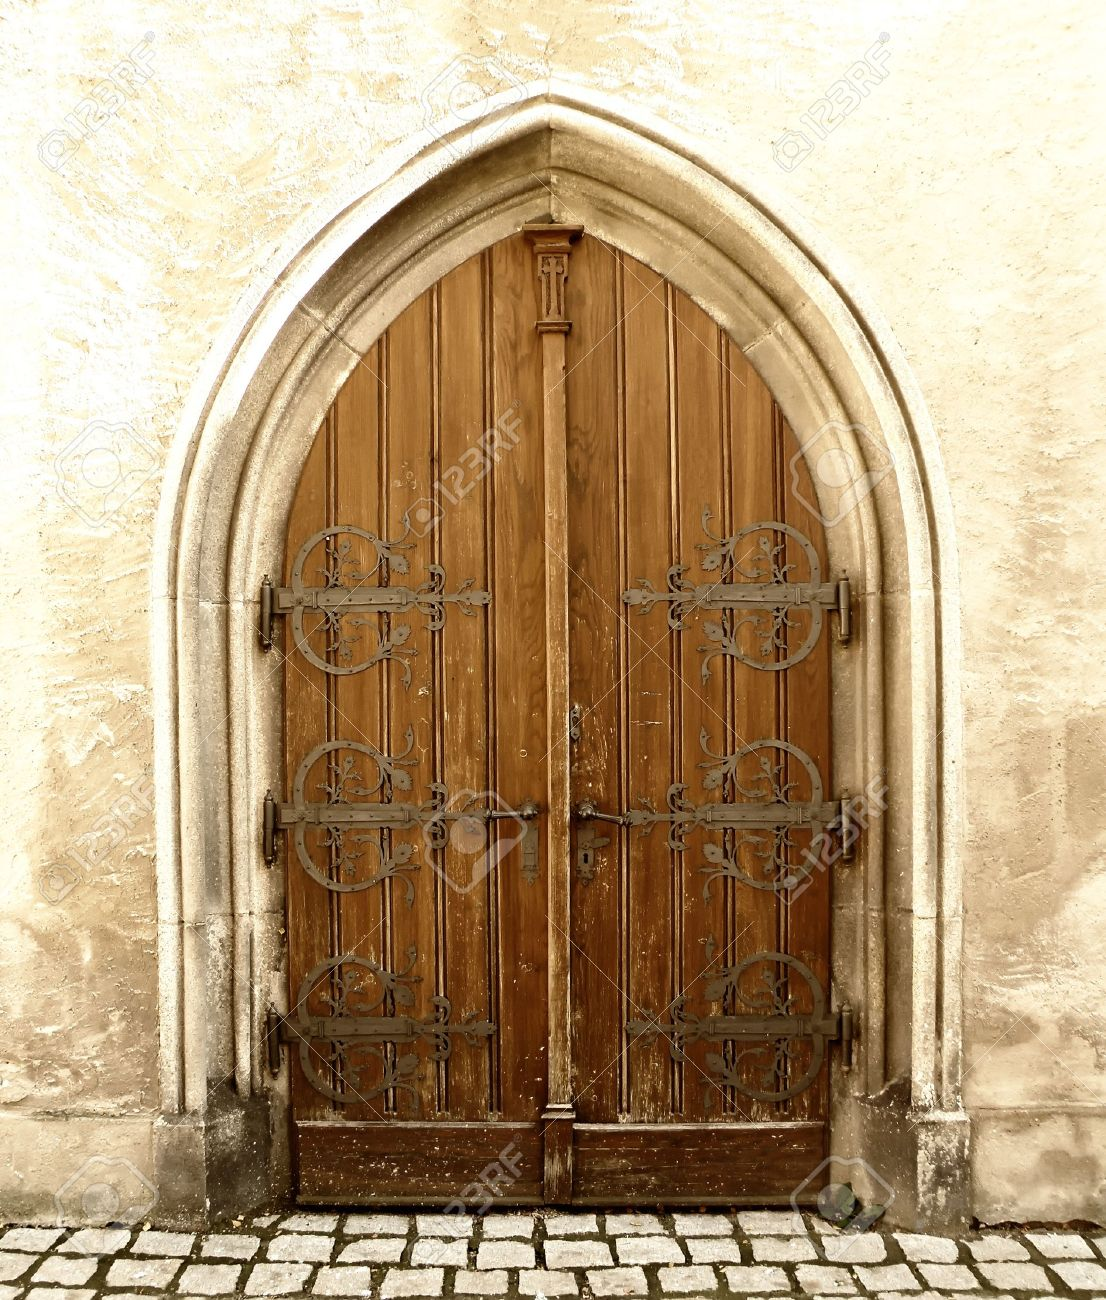 detail of an old church or castle door Stock Photo - 7992276